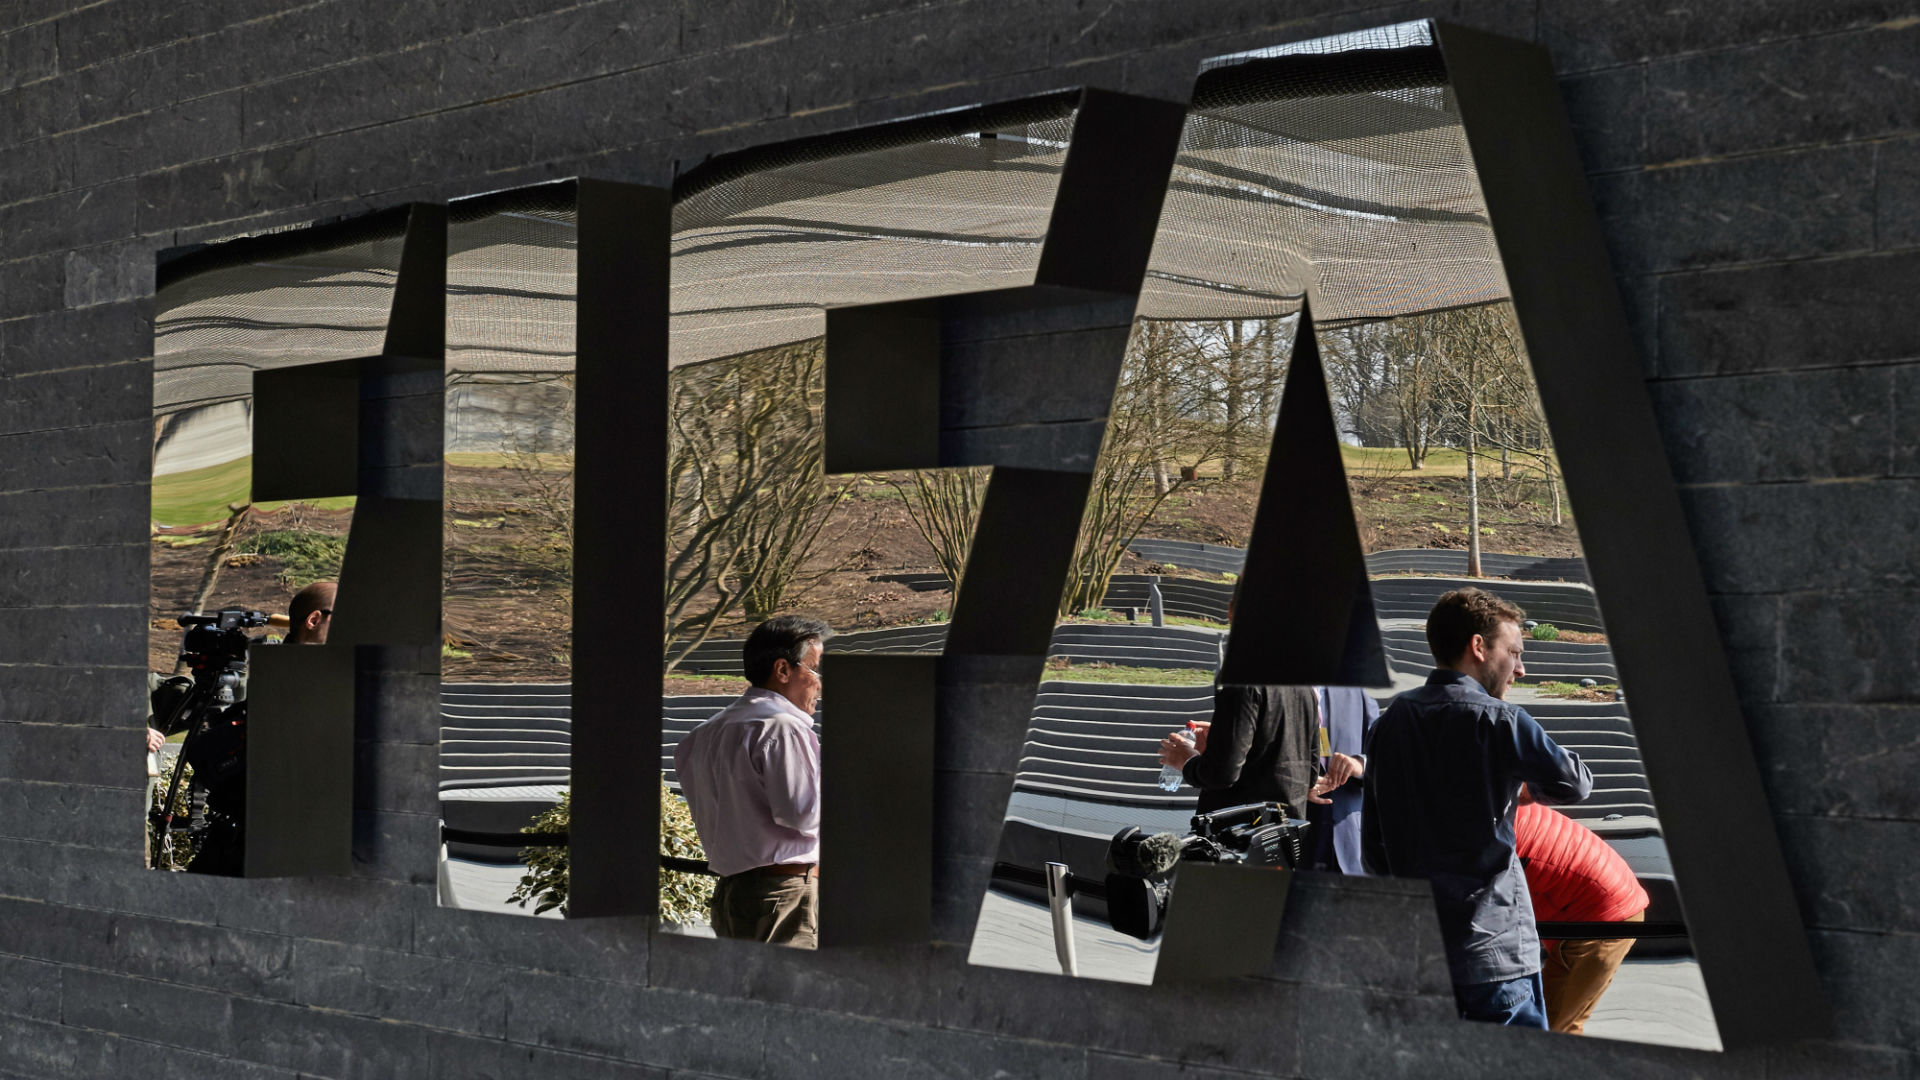 Top FIFA officials arrested in connection with U.S. corruption probe